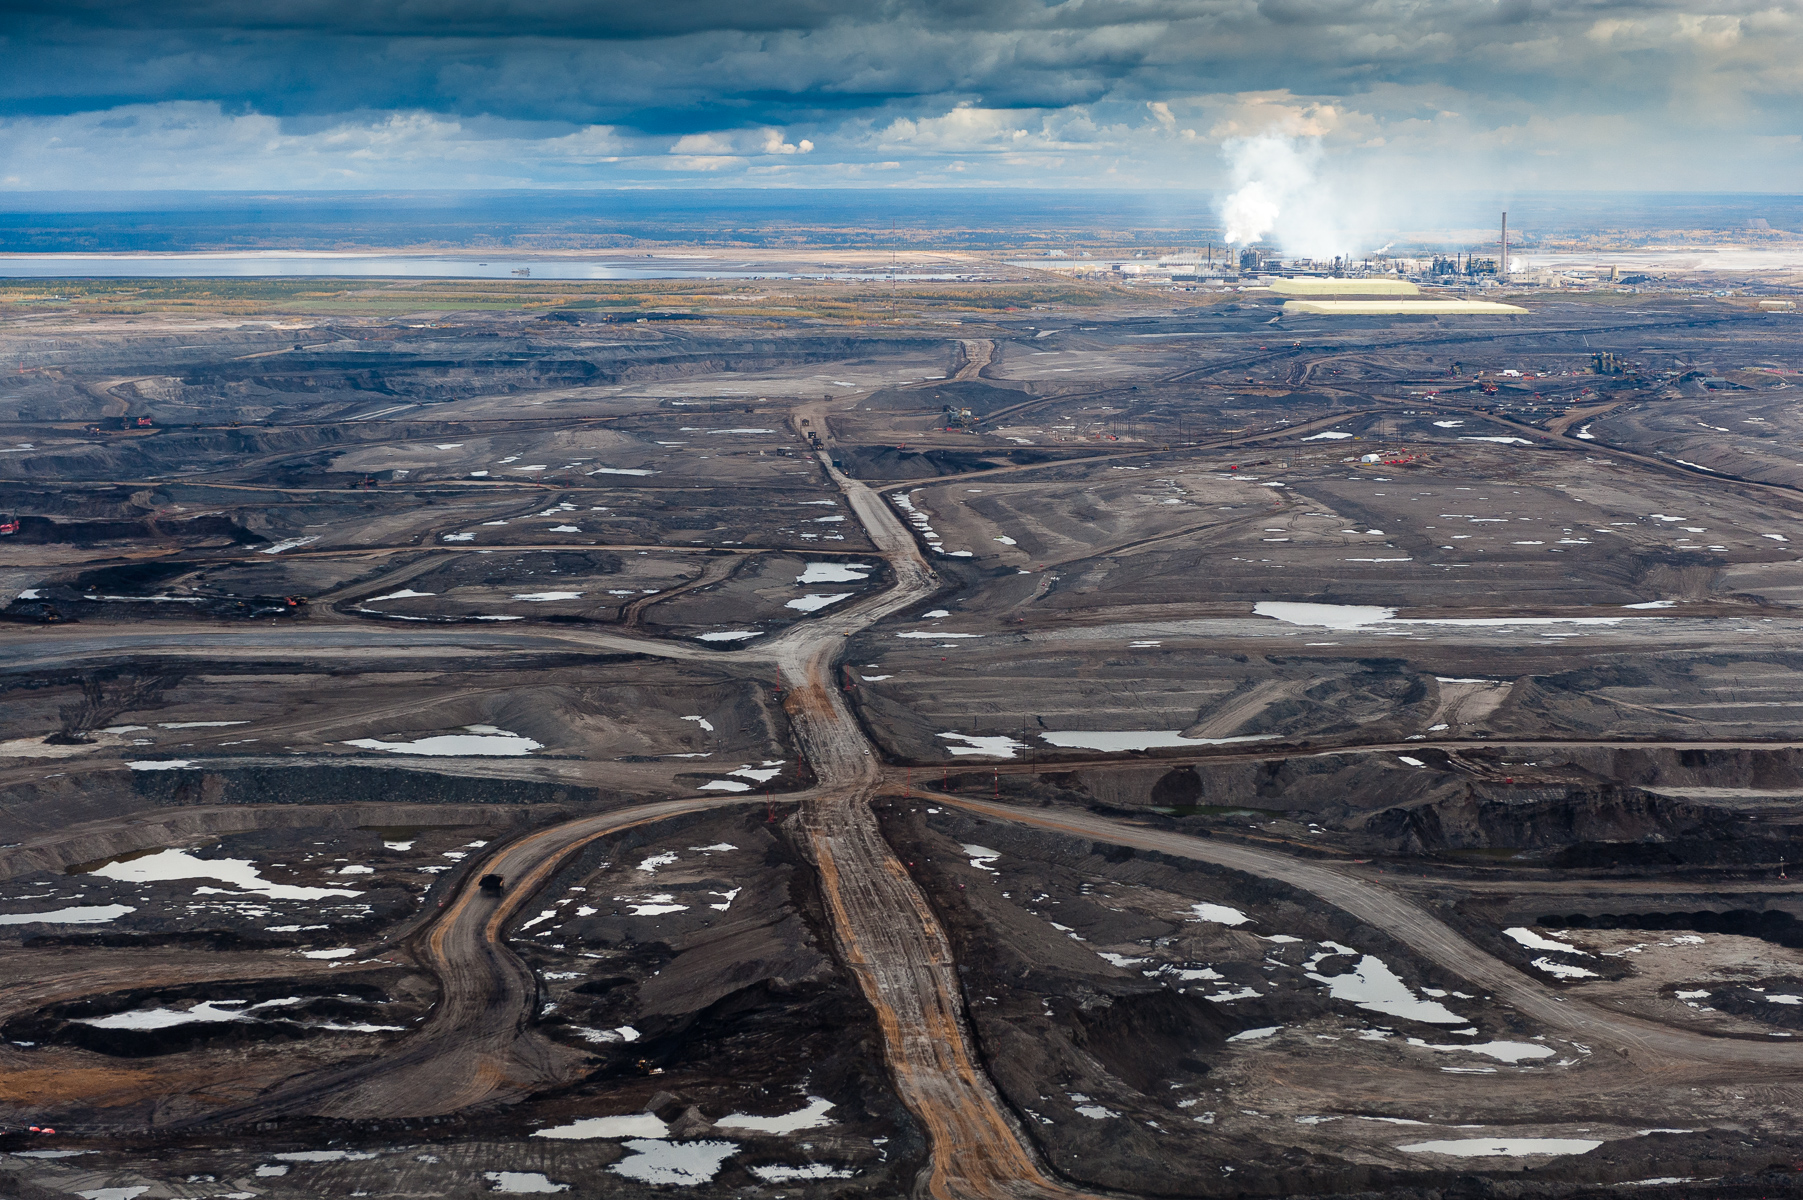 The refining or upgrading of the tarry bitumen which lies under the the boreal forests and wetlands of Northern Alberta consumes more water and energy than conventional oil production and produces more carbon. Each barrel of oil requires 3-5 barrels of fresh water from the neighboring Athabasca River. About 90% of this is returned as toxic tailings into the vast unlined tailings ponds that dot the landscape.g